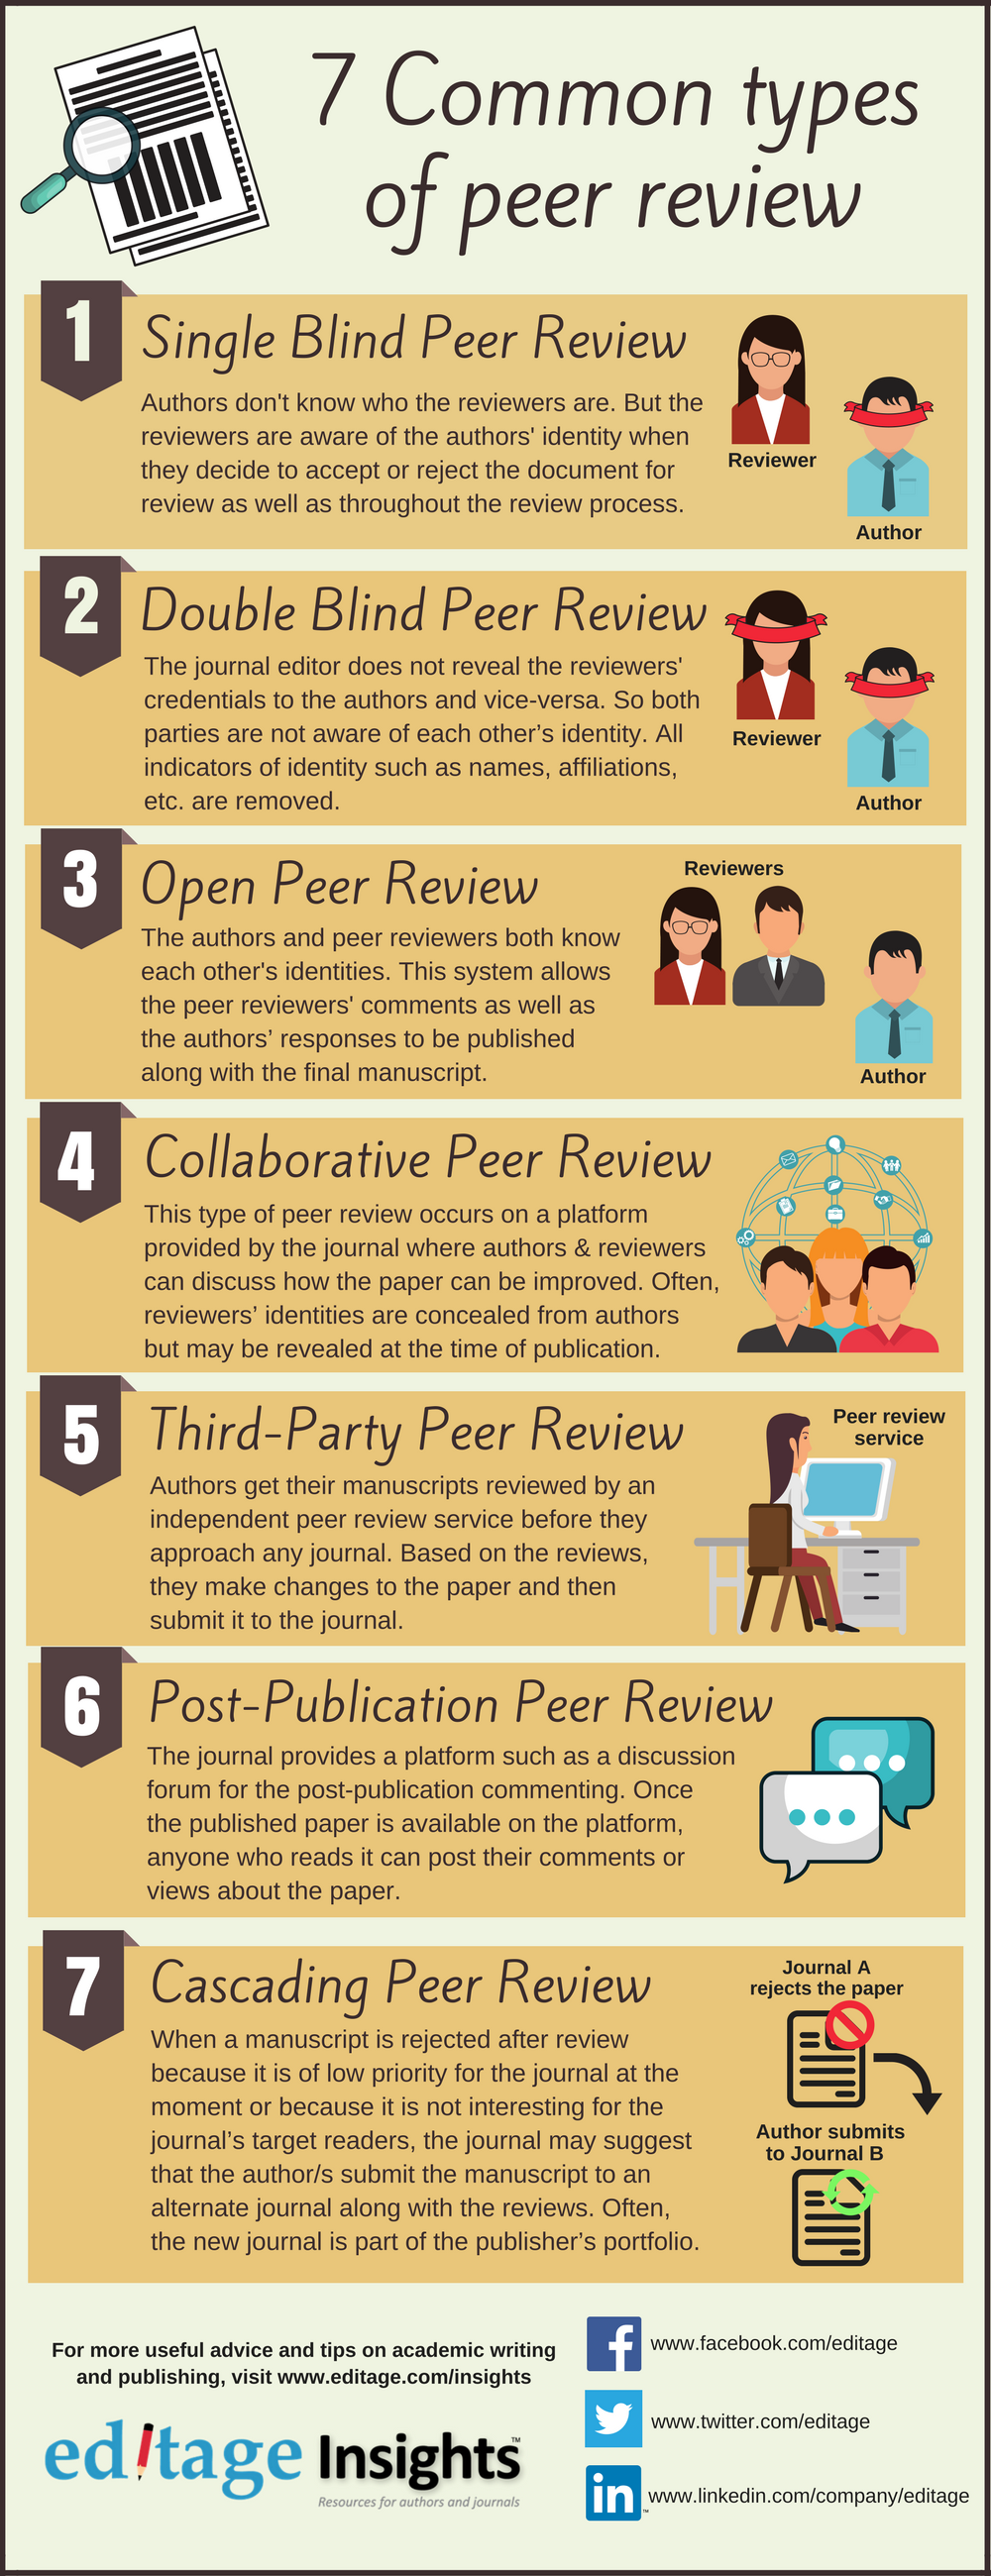 7 Common Types of Peer Review Infographic